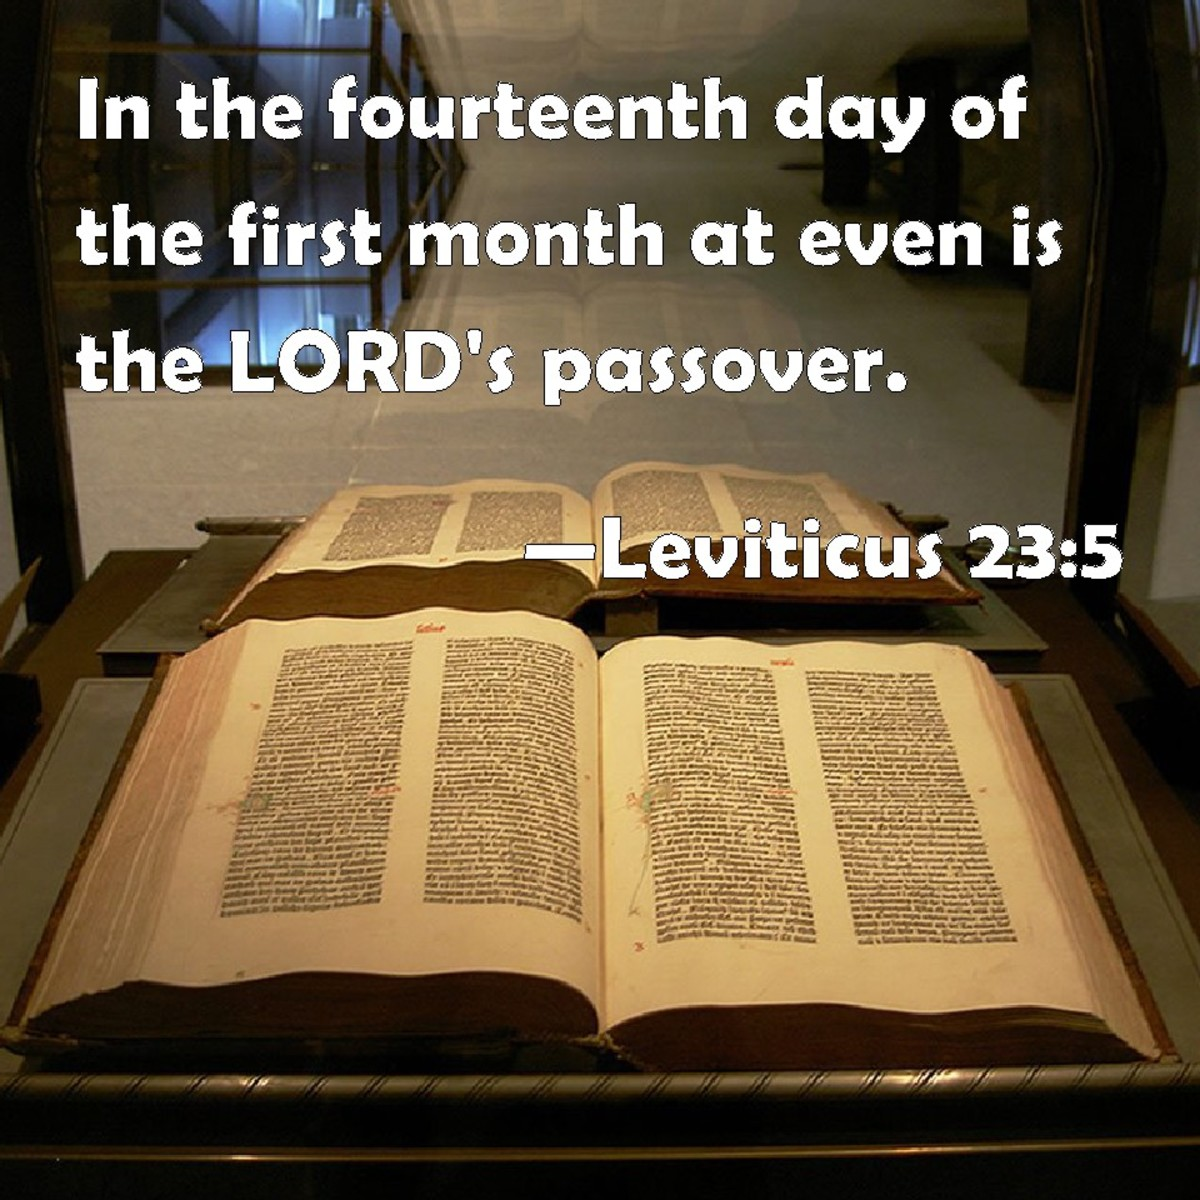 Christ Was Crucified on Wednesday and Resurrected on Saturday Based on Jewish Traditions